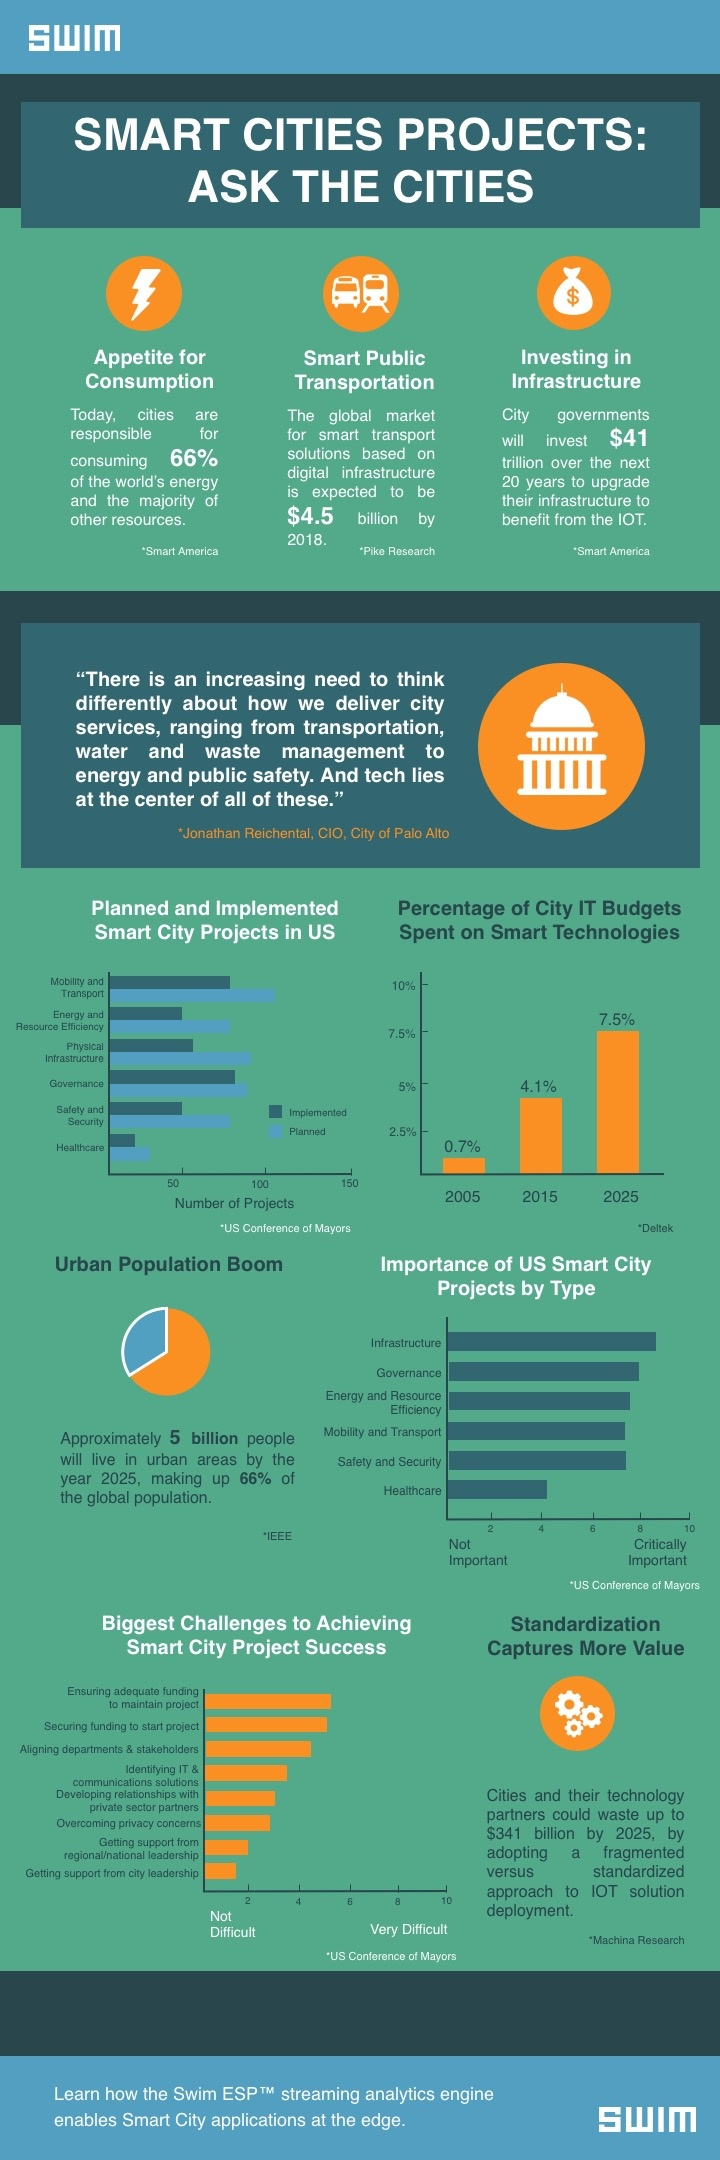 Ask the Smart Cities: Smart Cities Projects - Infographic | Swim Inc.